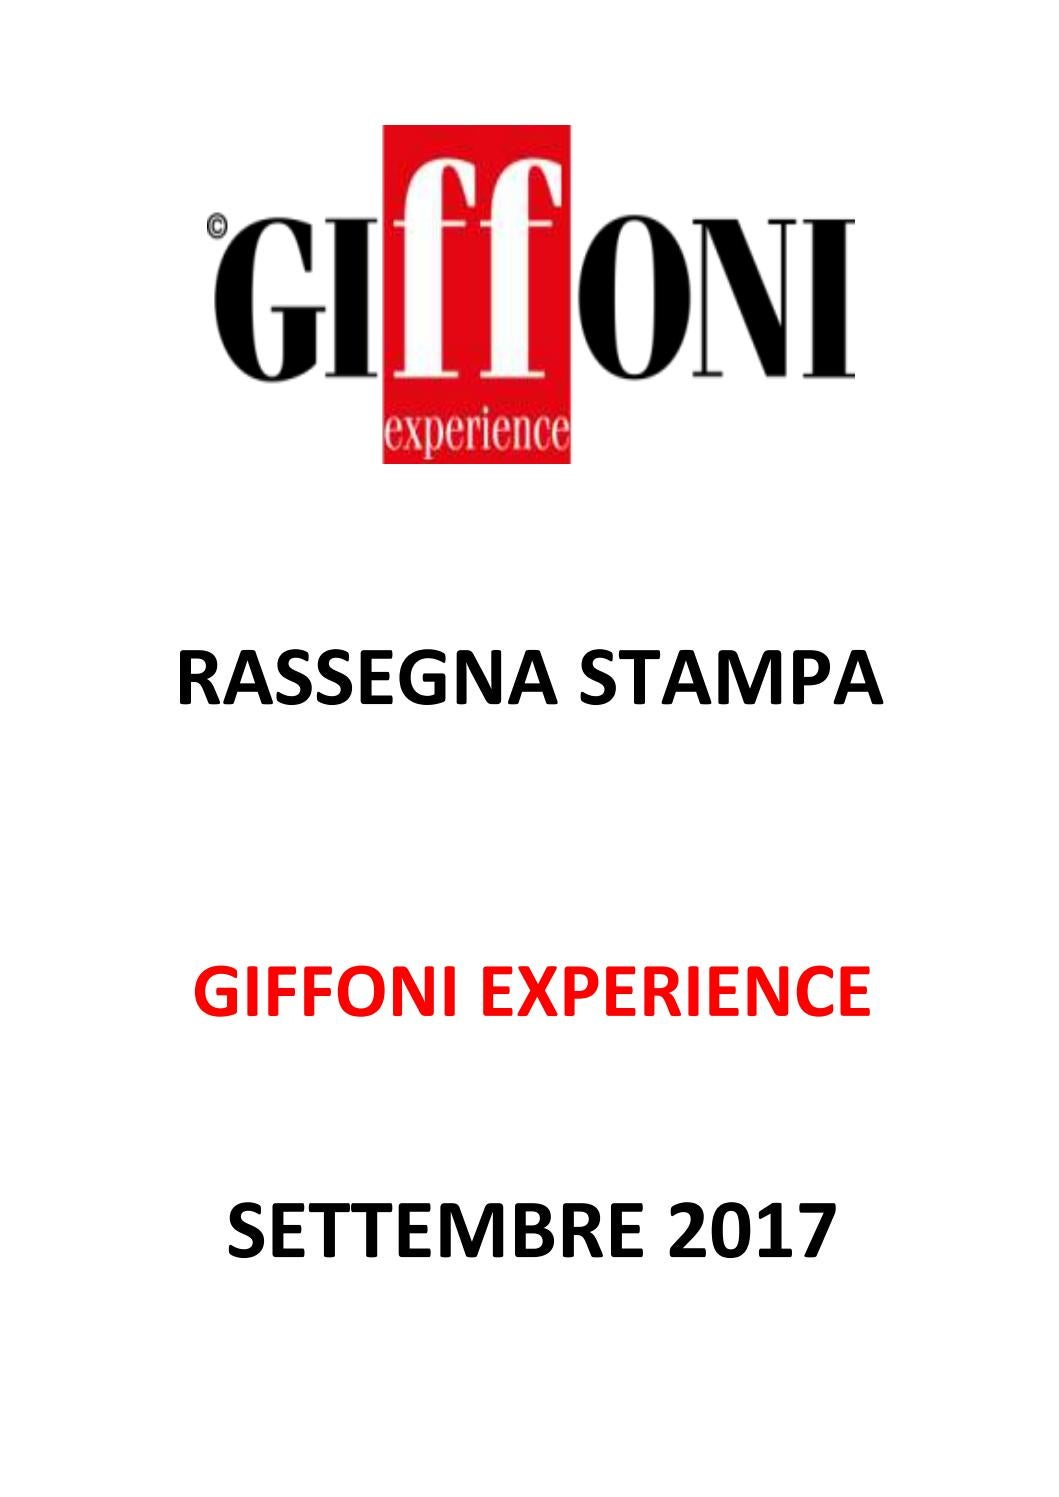 new concept bac59 5c691 Rassegna Stampa - Giffoni Experience - Settembre 2017 by Giffoni Experience  - issuu